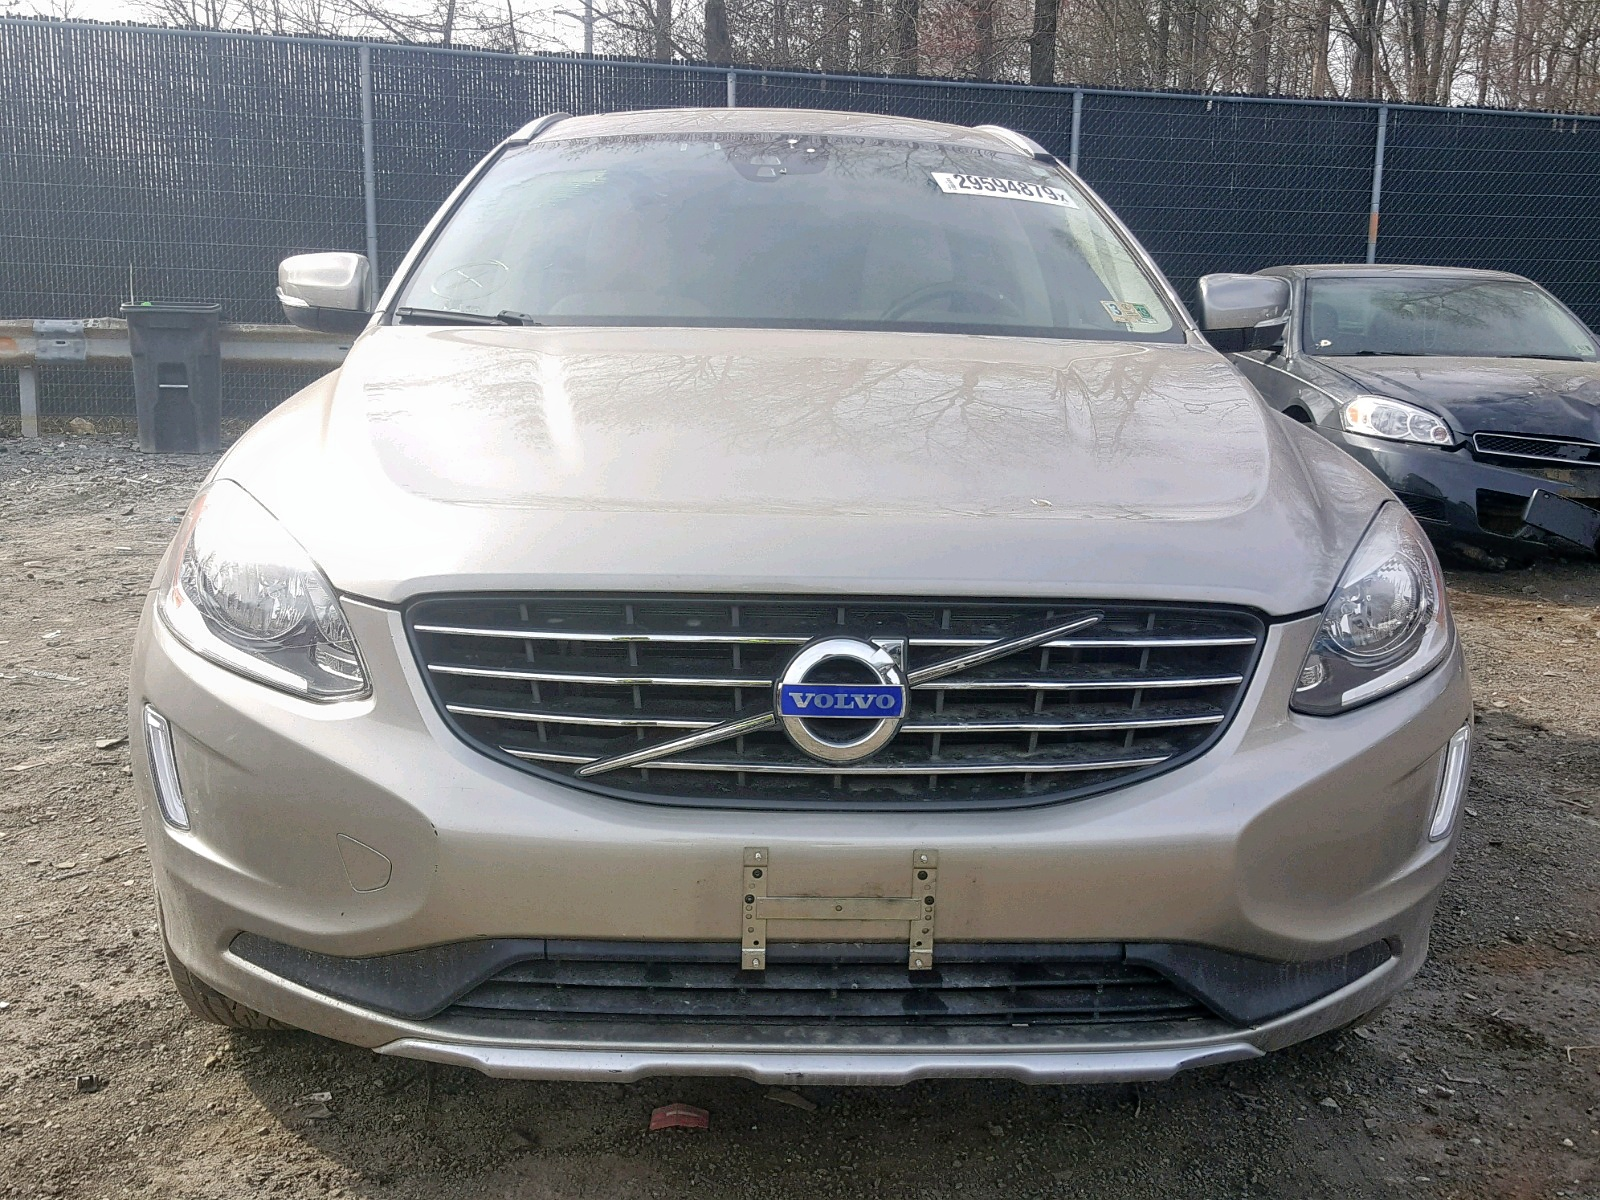 YV440MDB6F2578442 - 2015 Volvo Xc60 T5 2.0L engine view